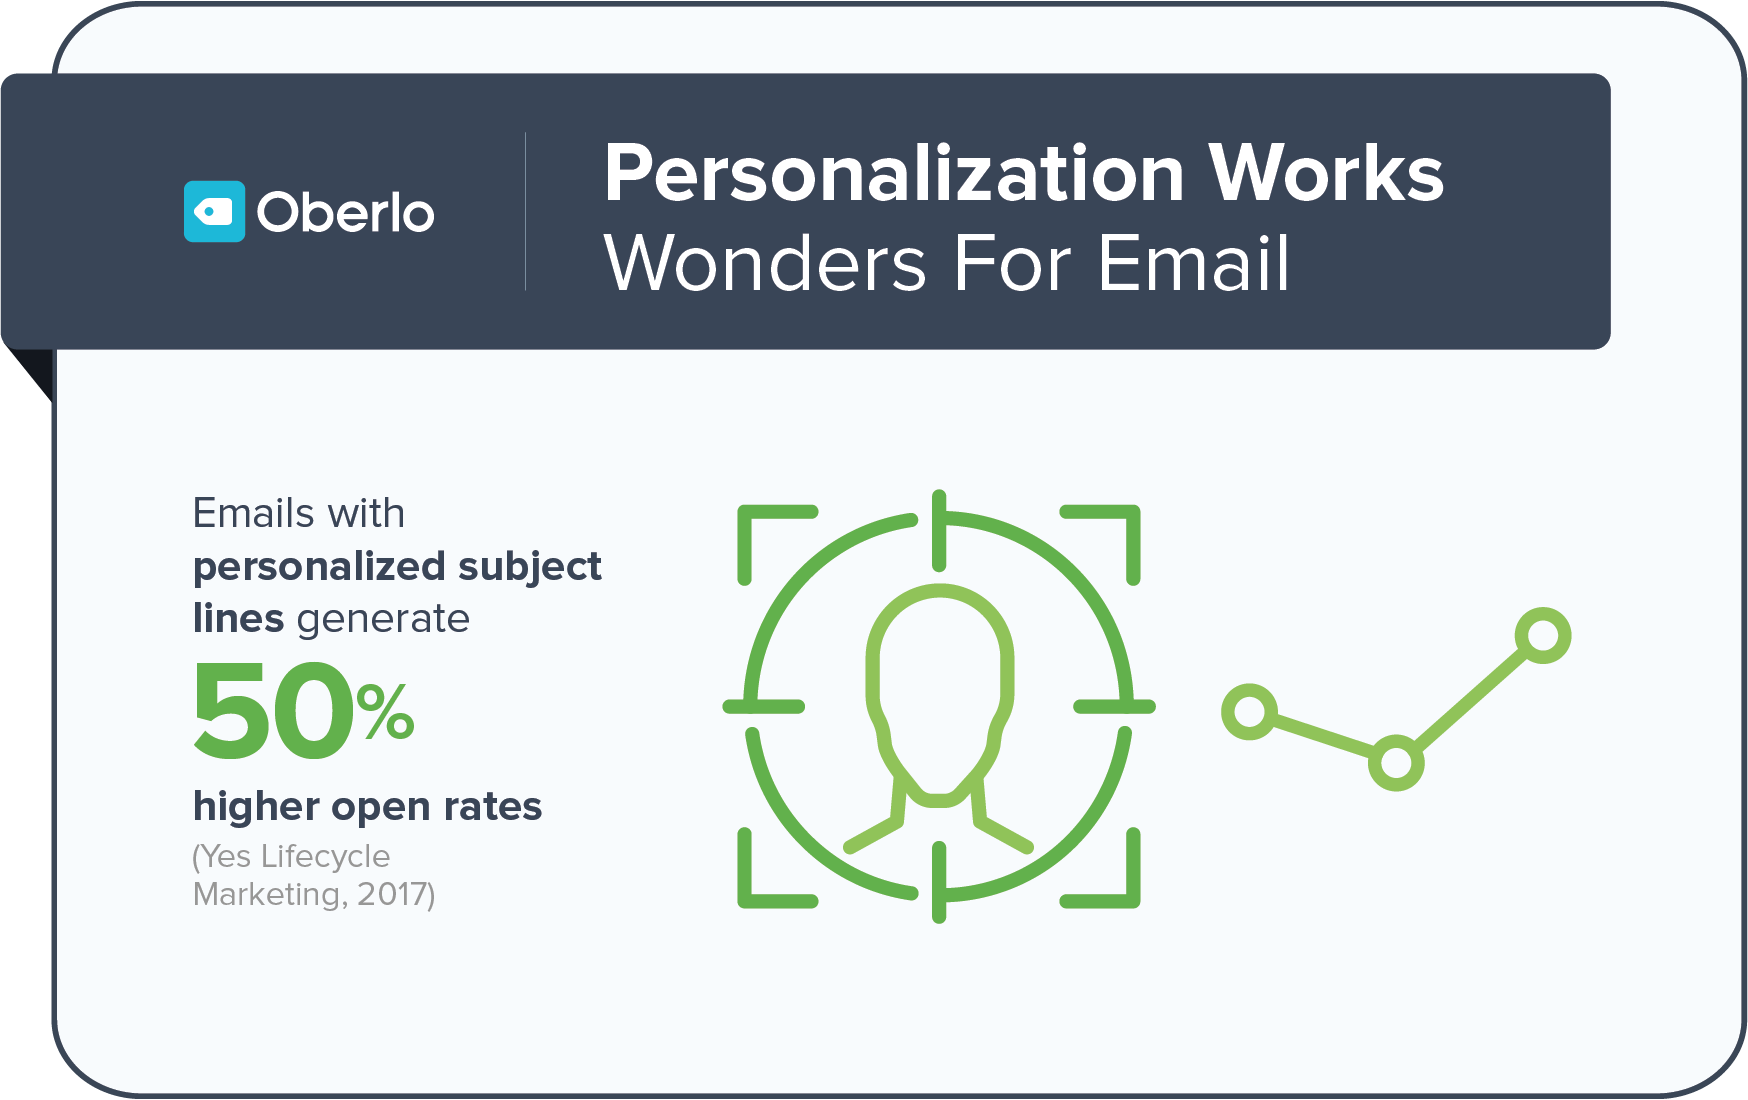 Personalization stats to consider